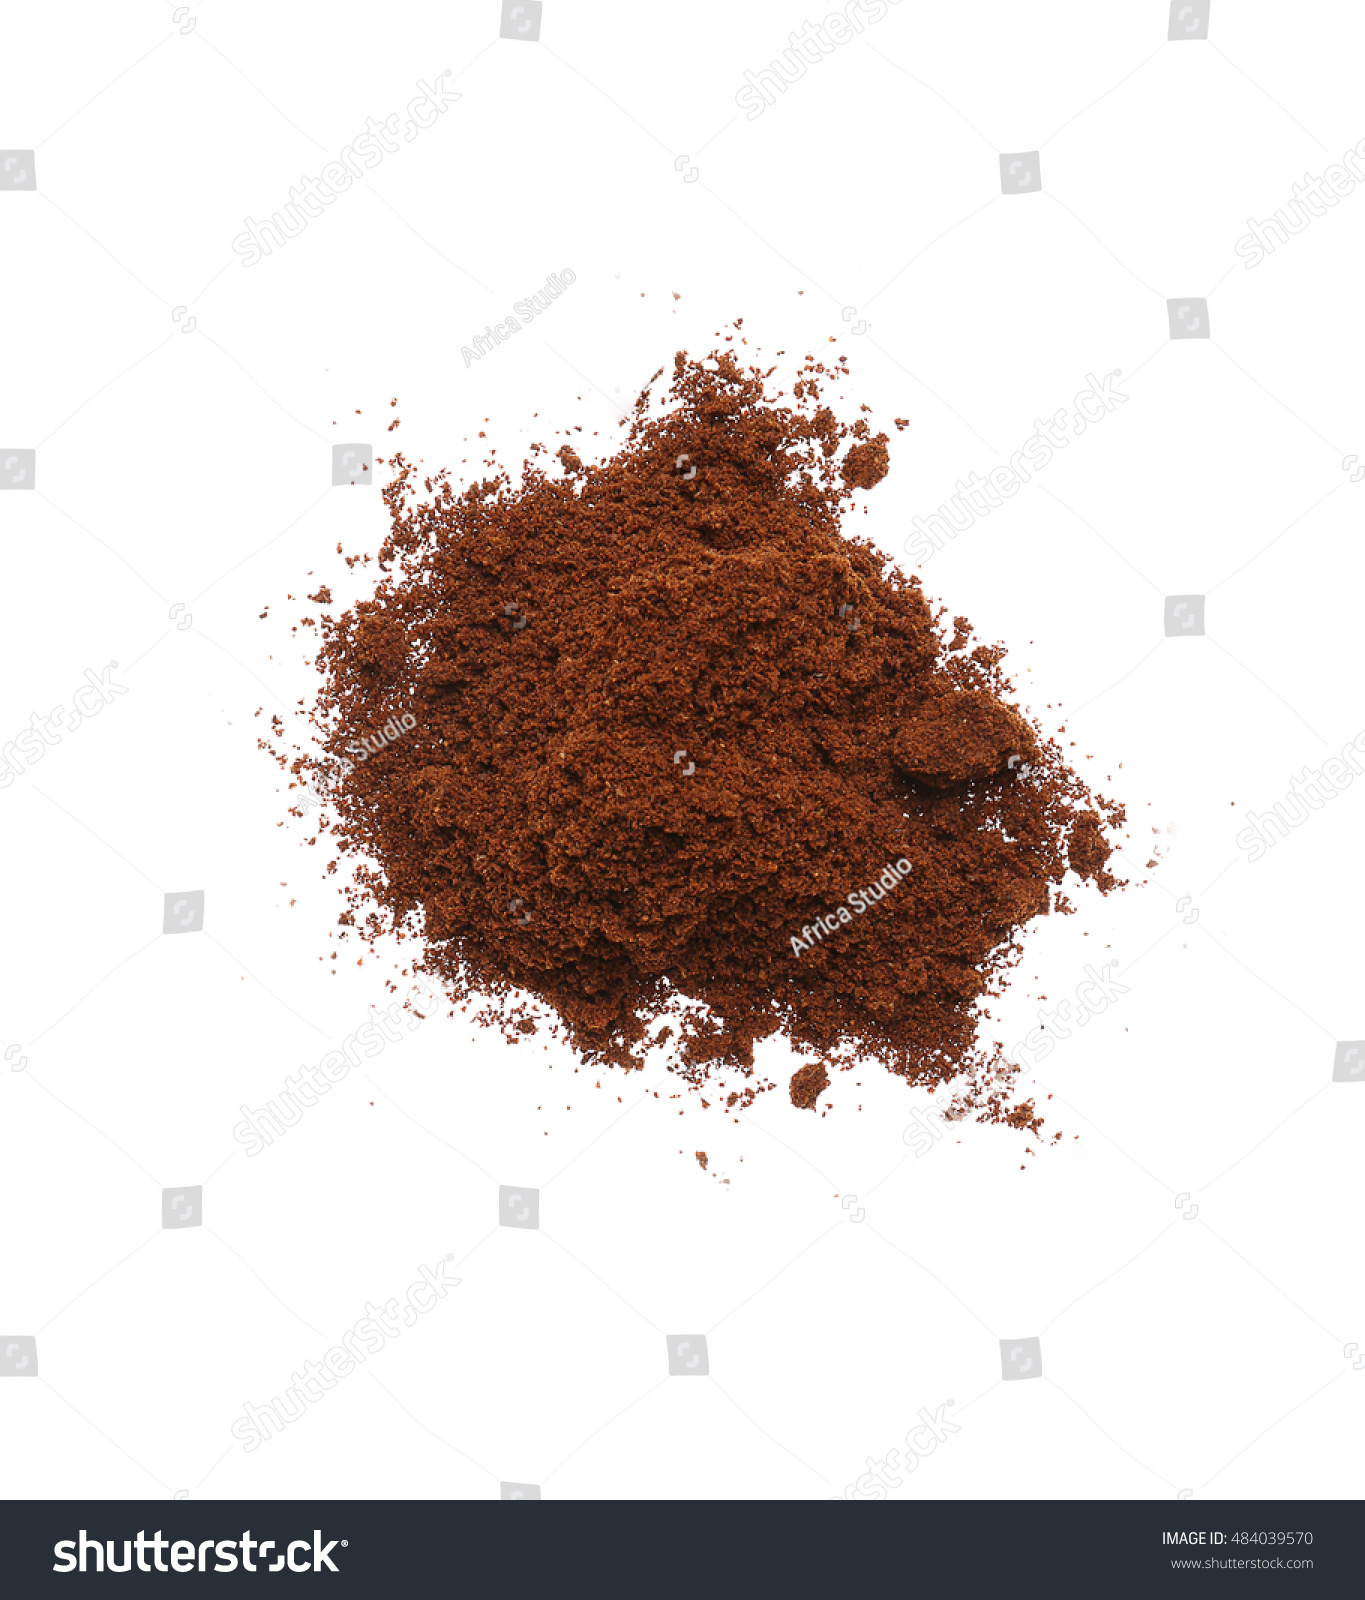 ground coffee stock photo - photo #42